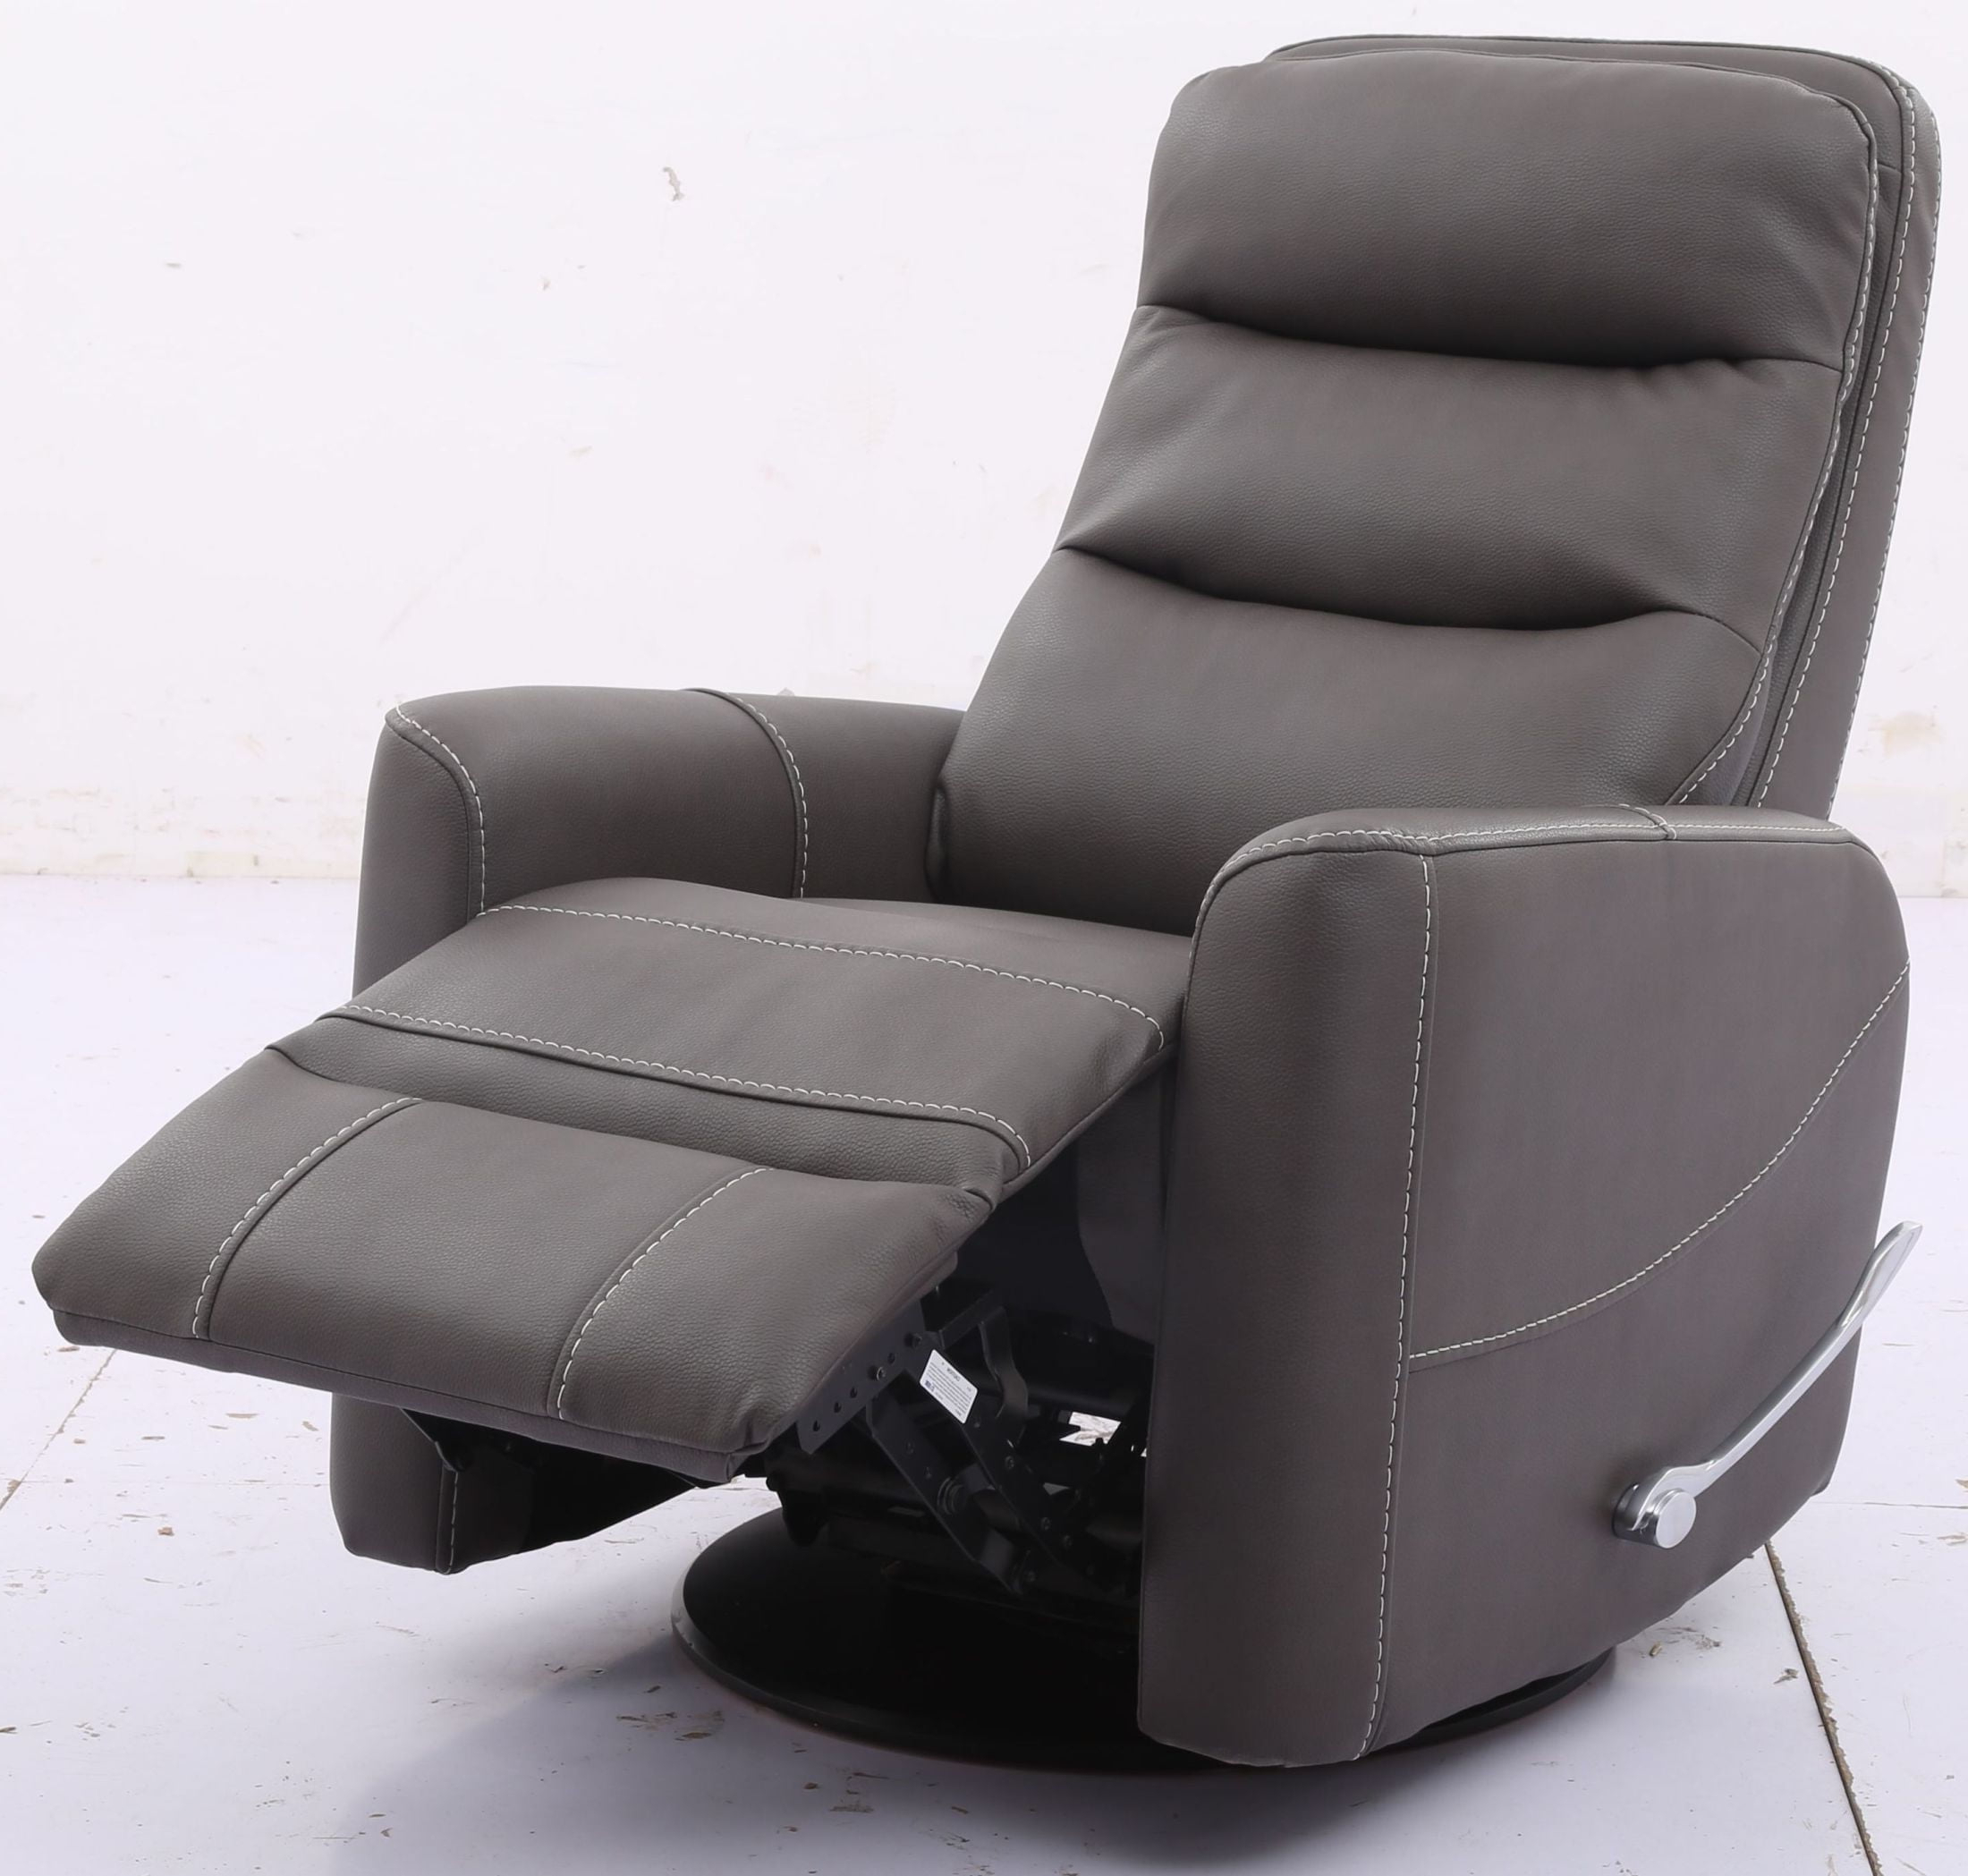 Popular Hercules Haze Swivel Glider Recliner With Articulating Headrest From Pertaining To Hercules Grey Swivel Glider Recliners (Gallery 20 of 20)